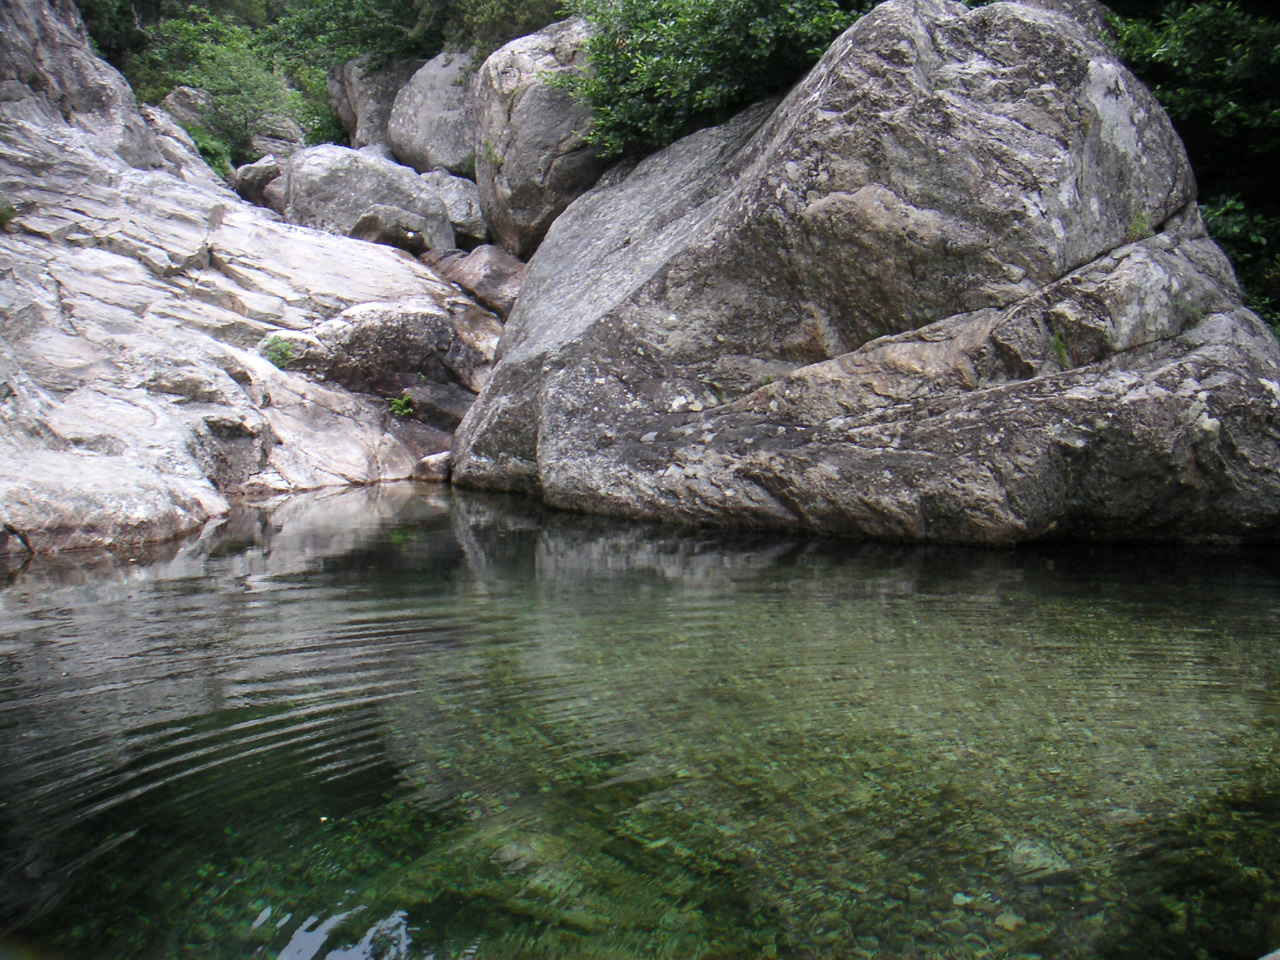 Les Gorges de Colombiéres By TouN at French via Wikimedia Commons